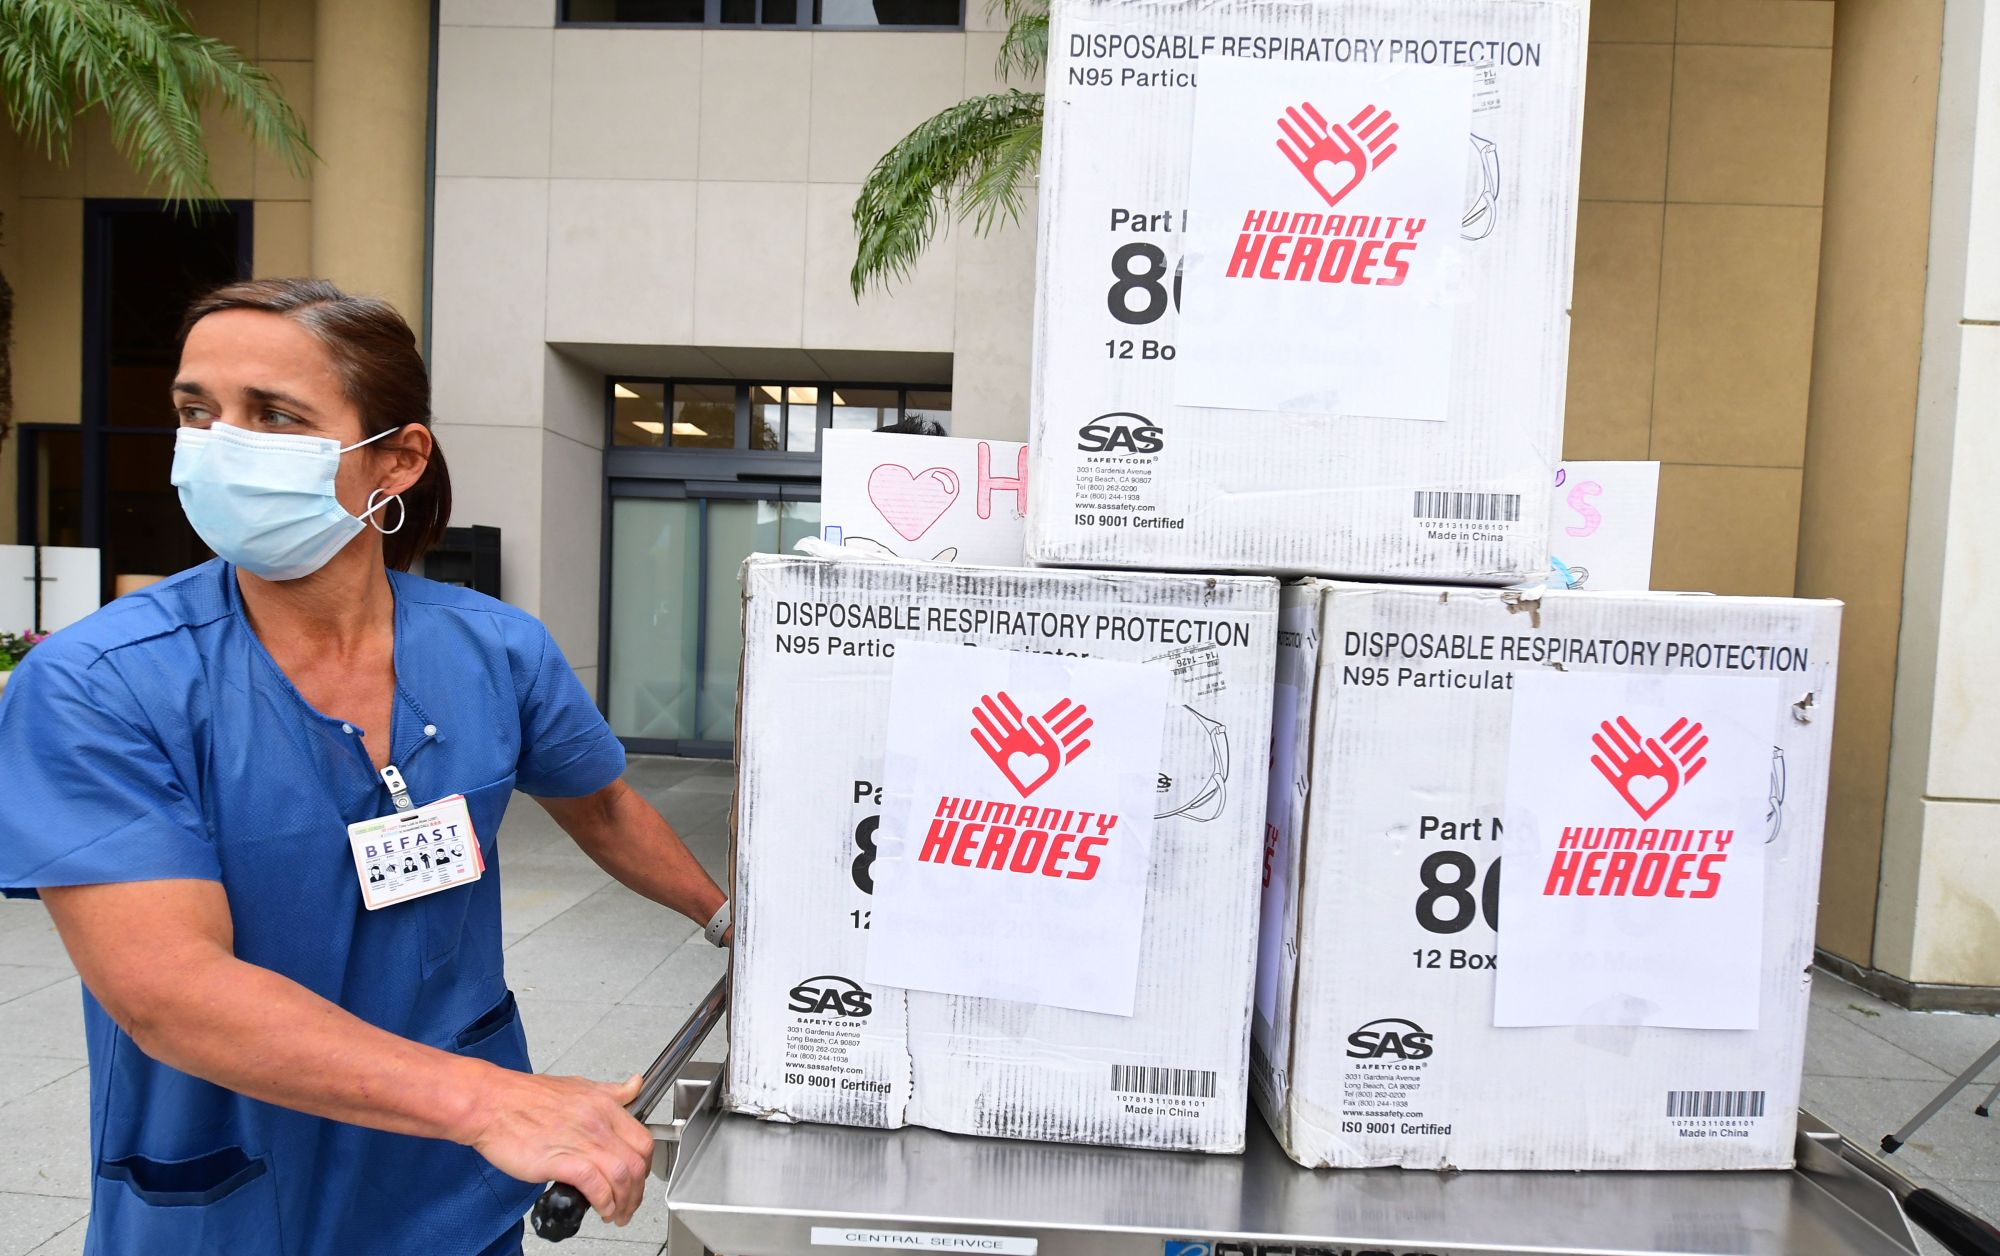 A nurse wearing a facemask pushes a cart of masks to Providence Saint Joseph Medical Center in Burbank on April 7, 2020, during the novel coronavirus outbreak. (FREDERIC J. BROWN/AFP via Getty Images)